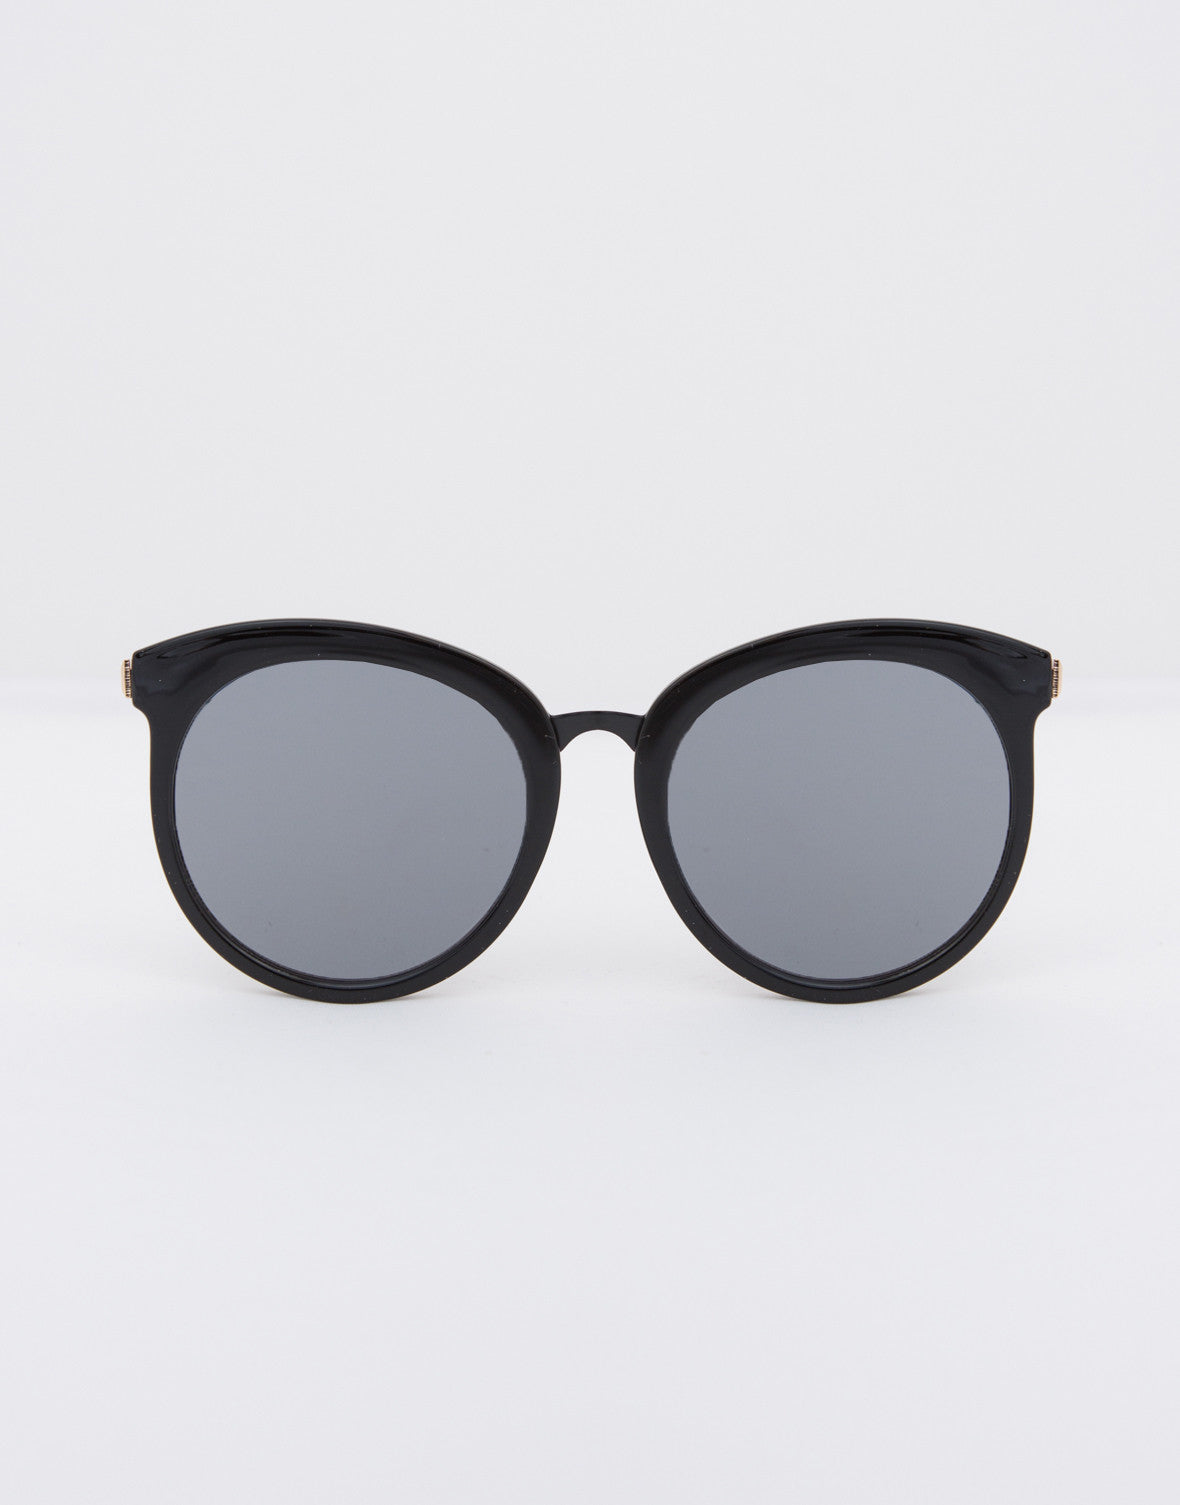 Round and About Sunglasses